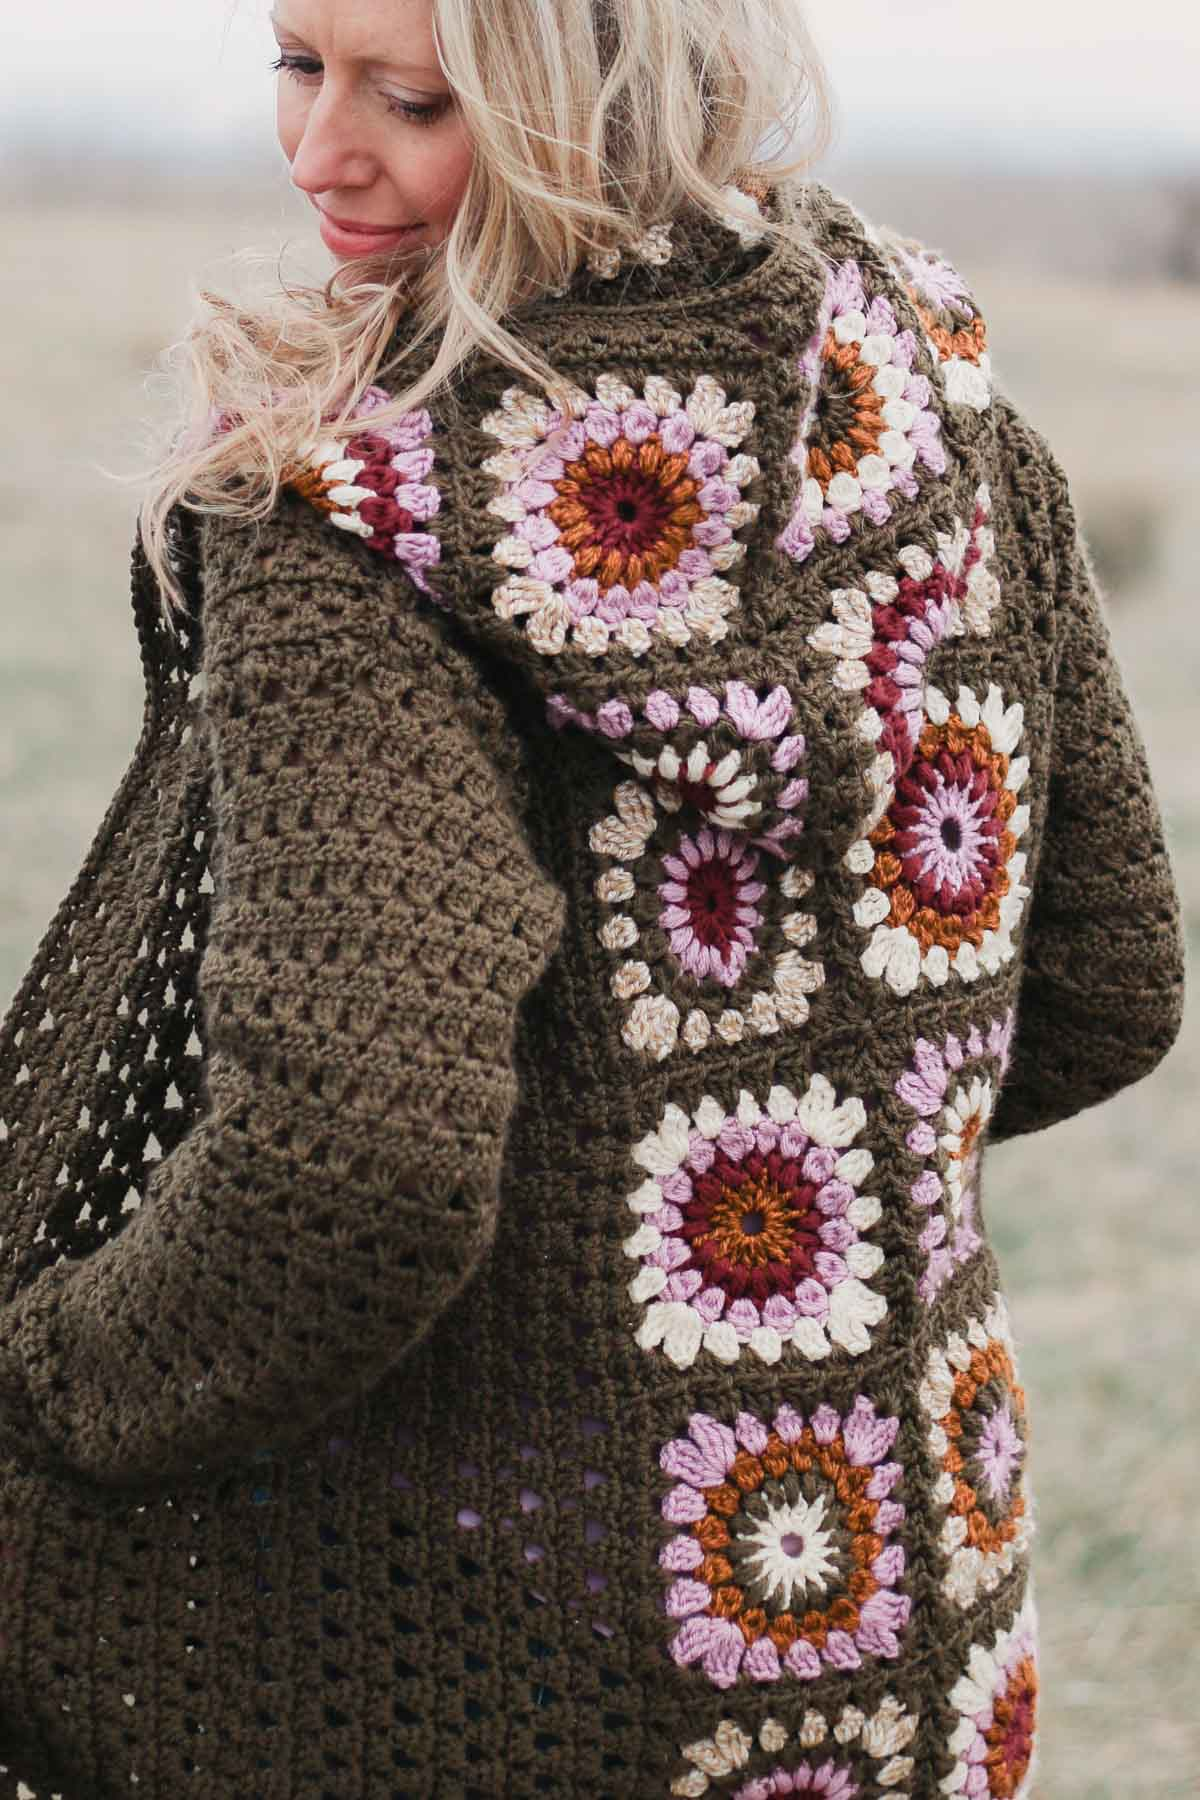 The back of a vintage-looking crochet granny stitch cardigan sweater with a hood.